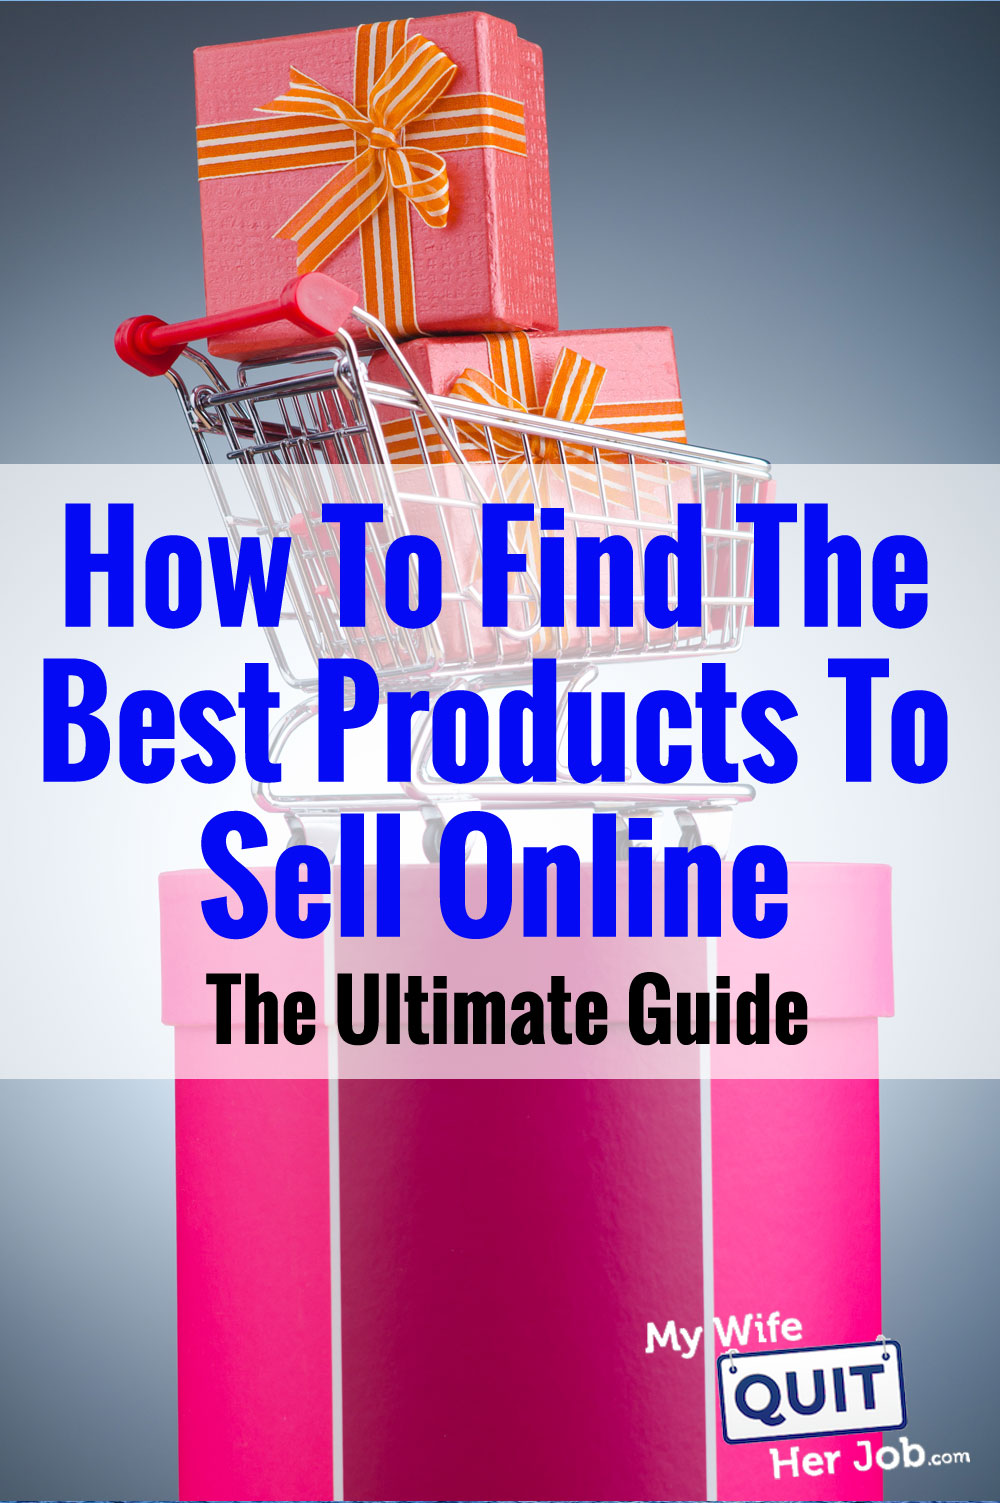 How To Find The Best Products To Sell Online - The Ultimate